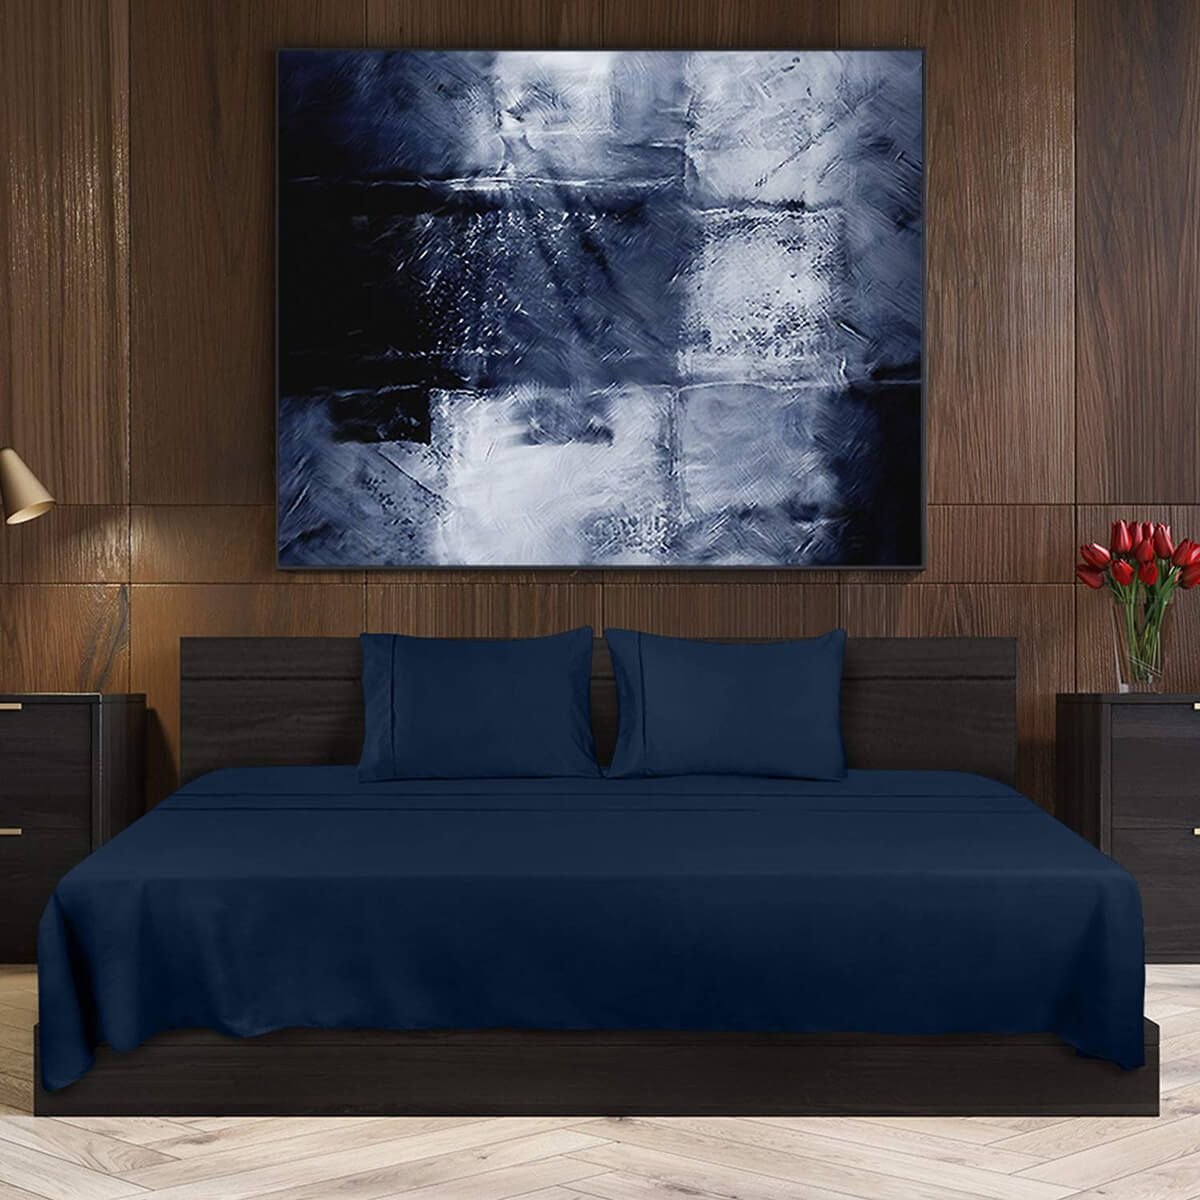 31 Fabulous Bed Sheet Sets That Will Add More Beauty To Your Bedroom Luxury Bed Sheets Bed Sheet Sets Luxury Sheet Sets